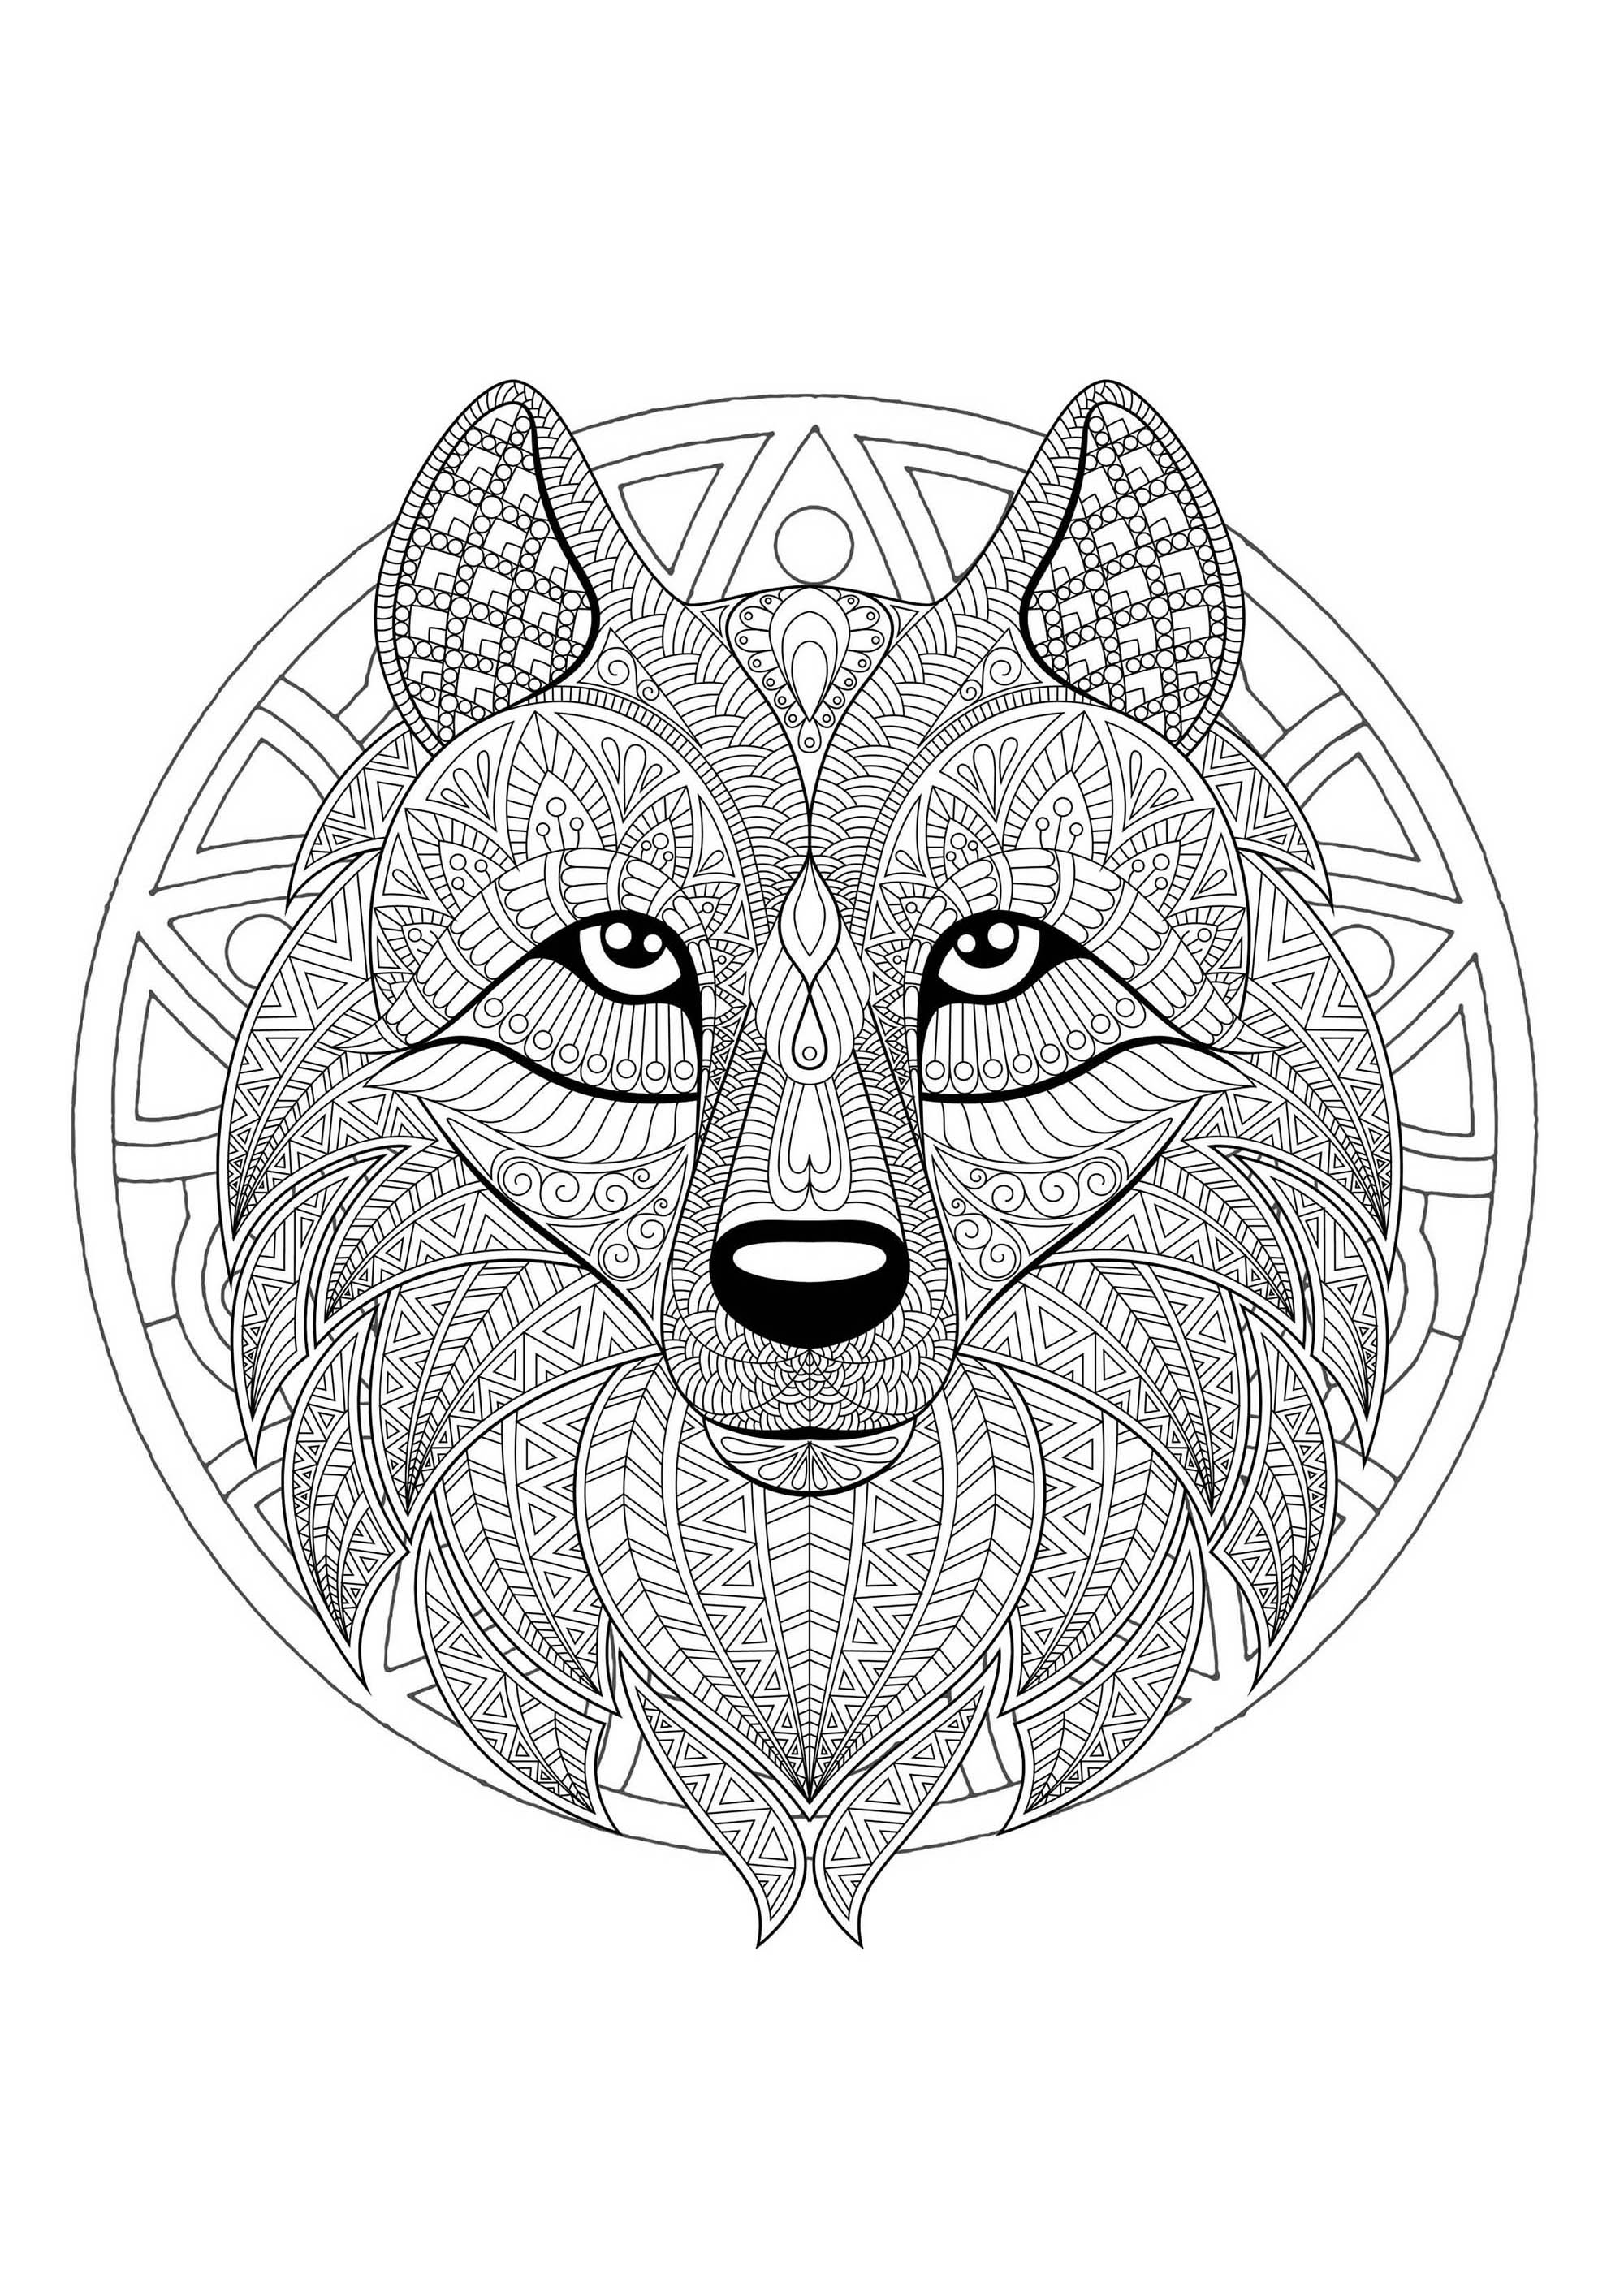 mandalas to color for adults simple floral mandala mandalas adult coloring pages to color mandalas adults for